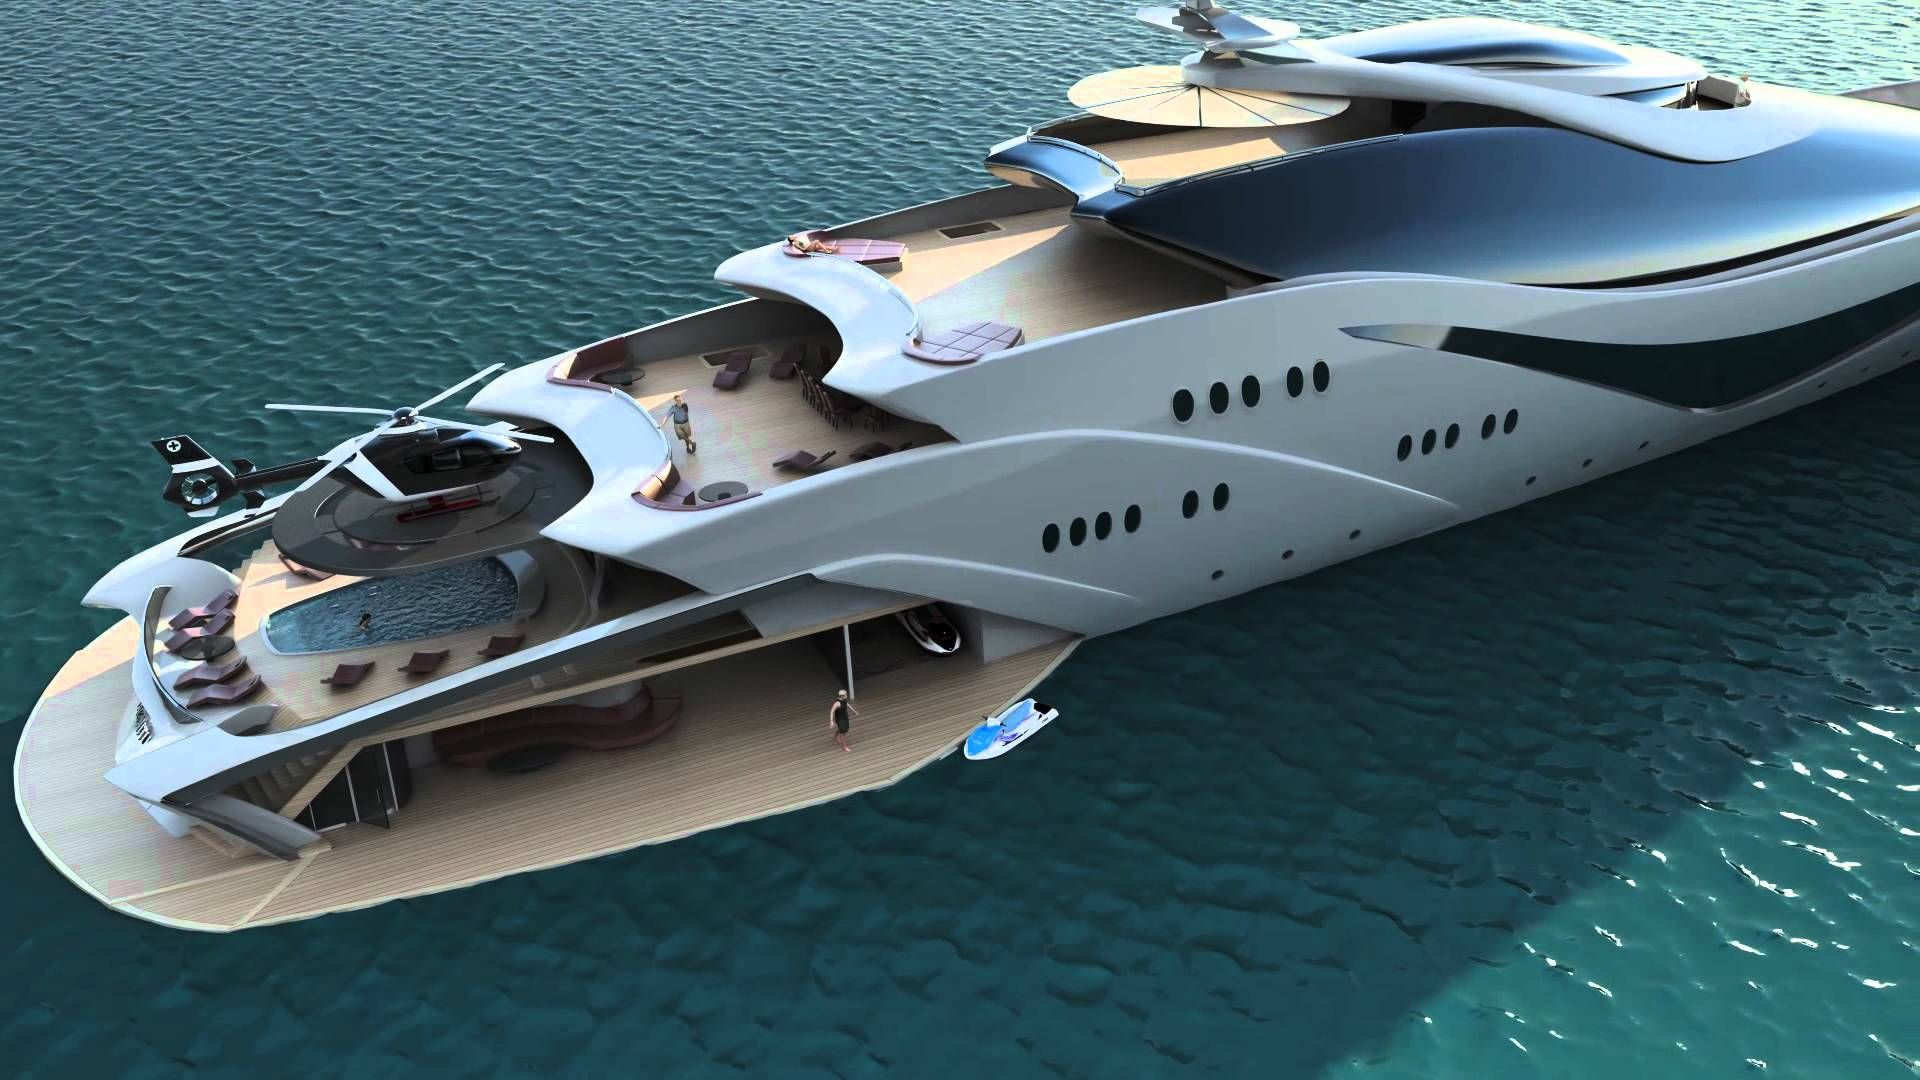 Top 10 Craziest Future Boat Designs With Images Luxury Yachts